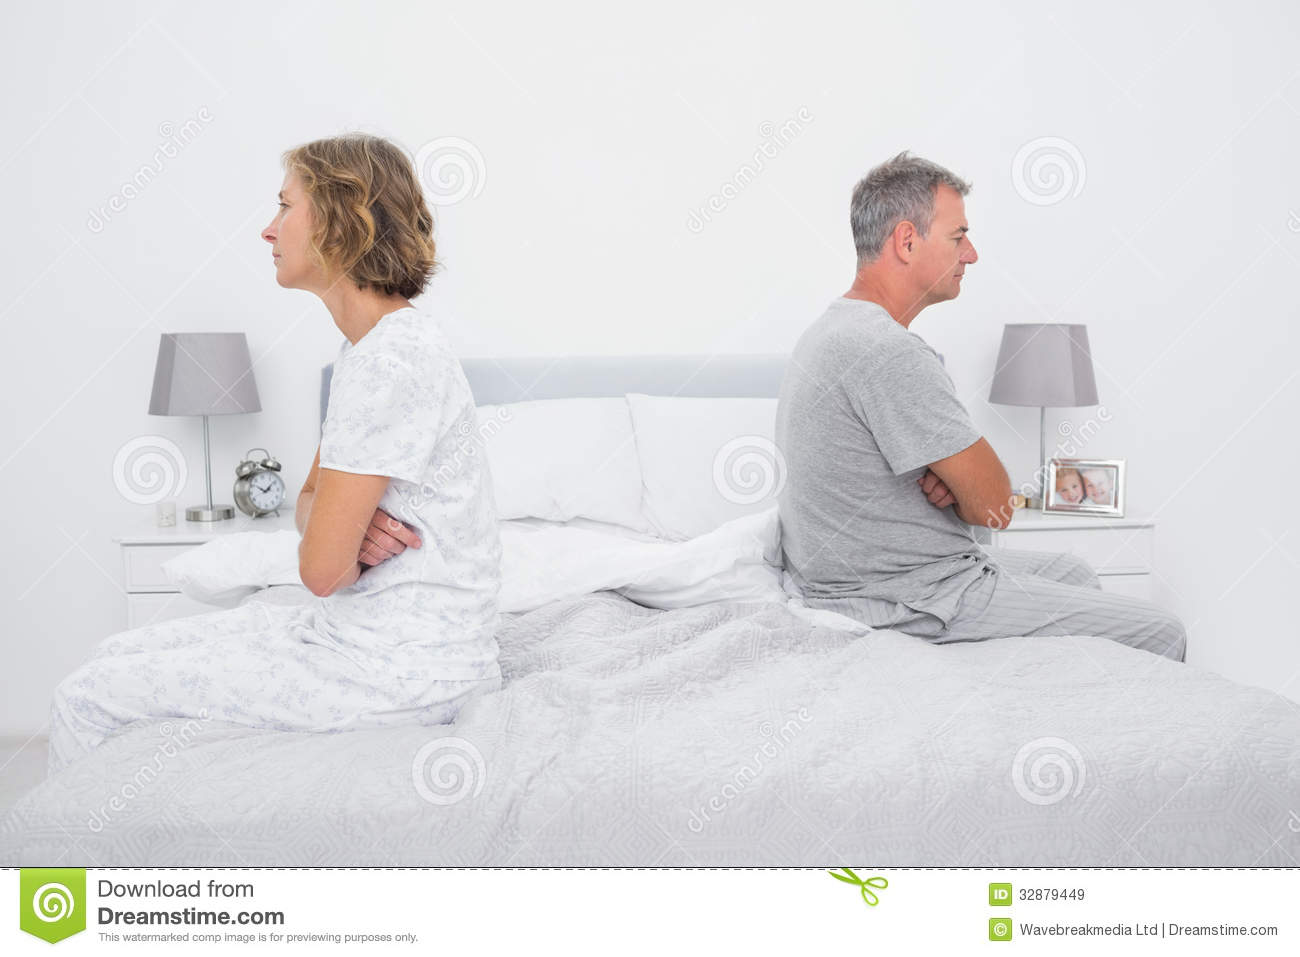 Royalty Free Stock Images Couple Sitting Different Sides Bed Not Talking Dispu Dispute Bedroom Home Image32879449 together with Two Bedroom Two And A Half Bath Townhouse 101 further Stock Image Happy Pregnant Family Image23460131 together with There Is There Are Beginner English Esl Efl Plan A1 My Home together with Best House Plans 3 Bedroom. on 3 bed 2 5 house plans